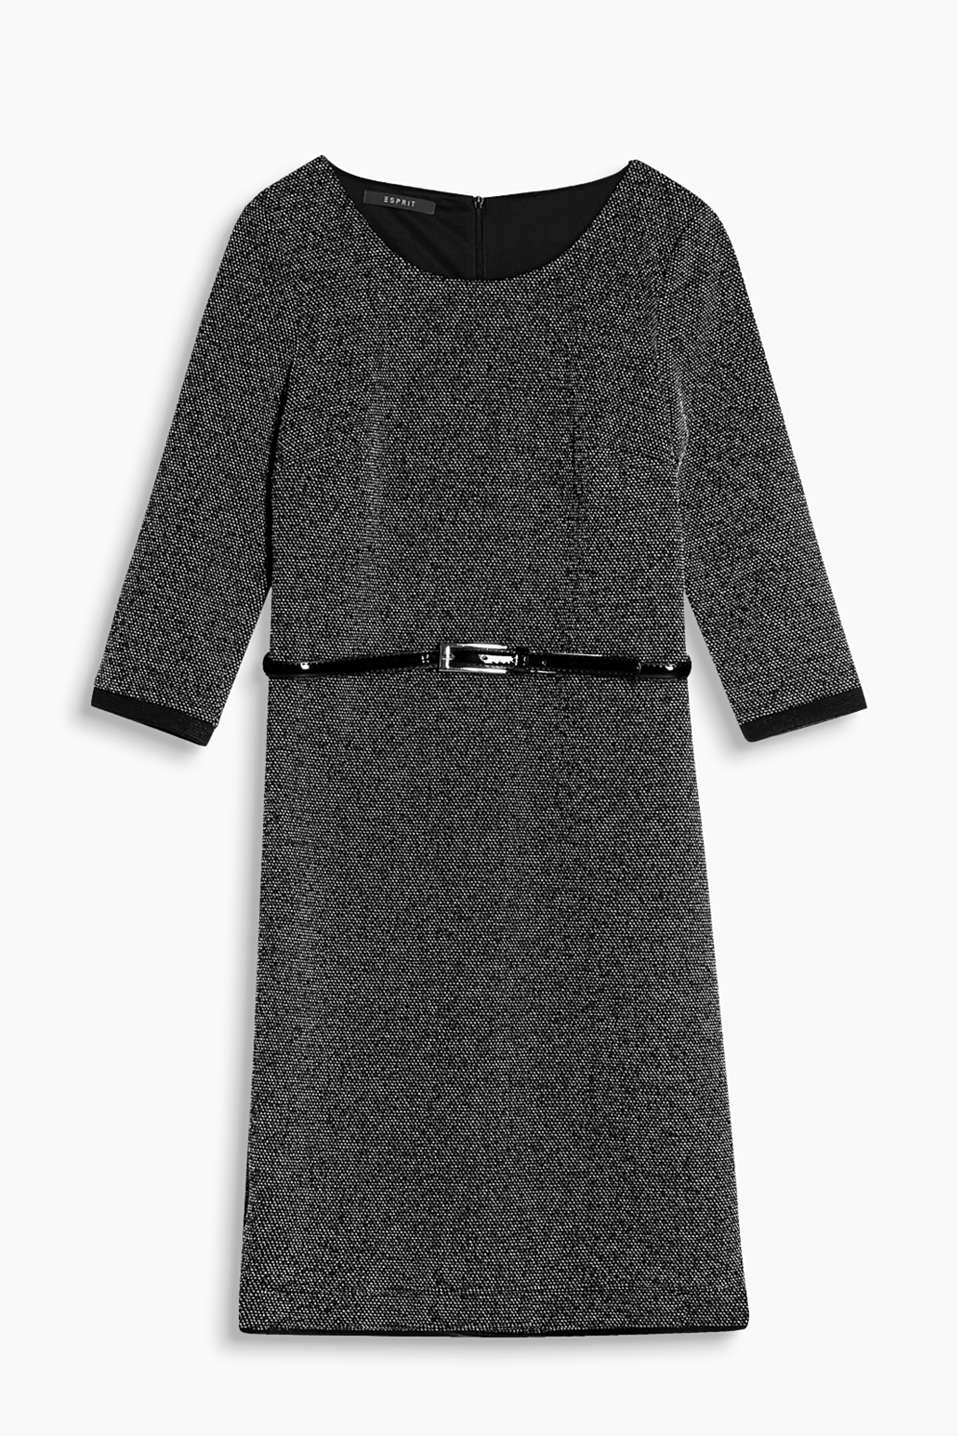 Introducing a dress for any occasion - in comfy jersey with a trendy melange finish and shiny, patent-effect belt